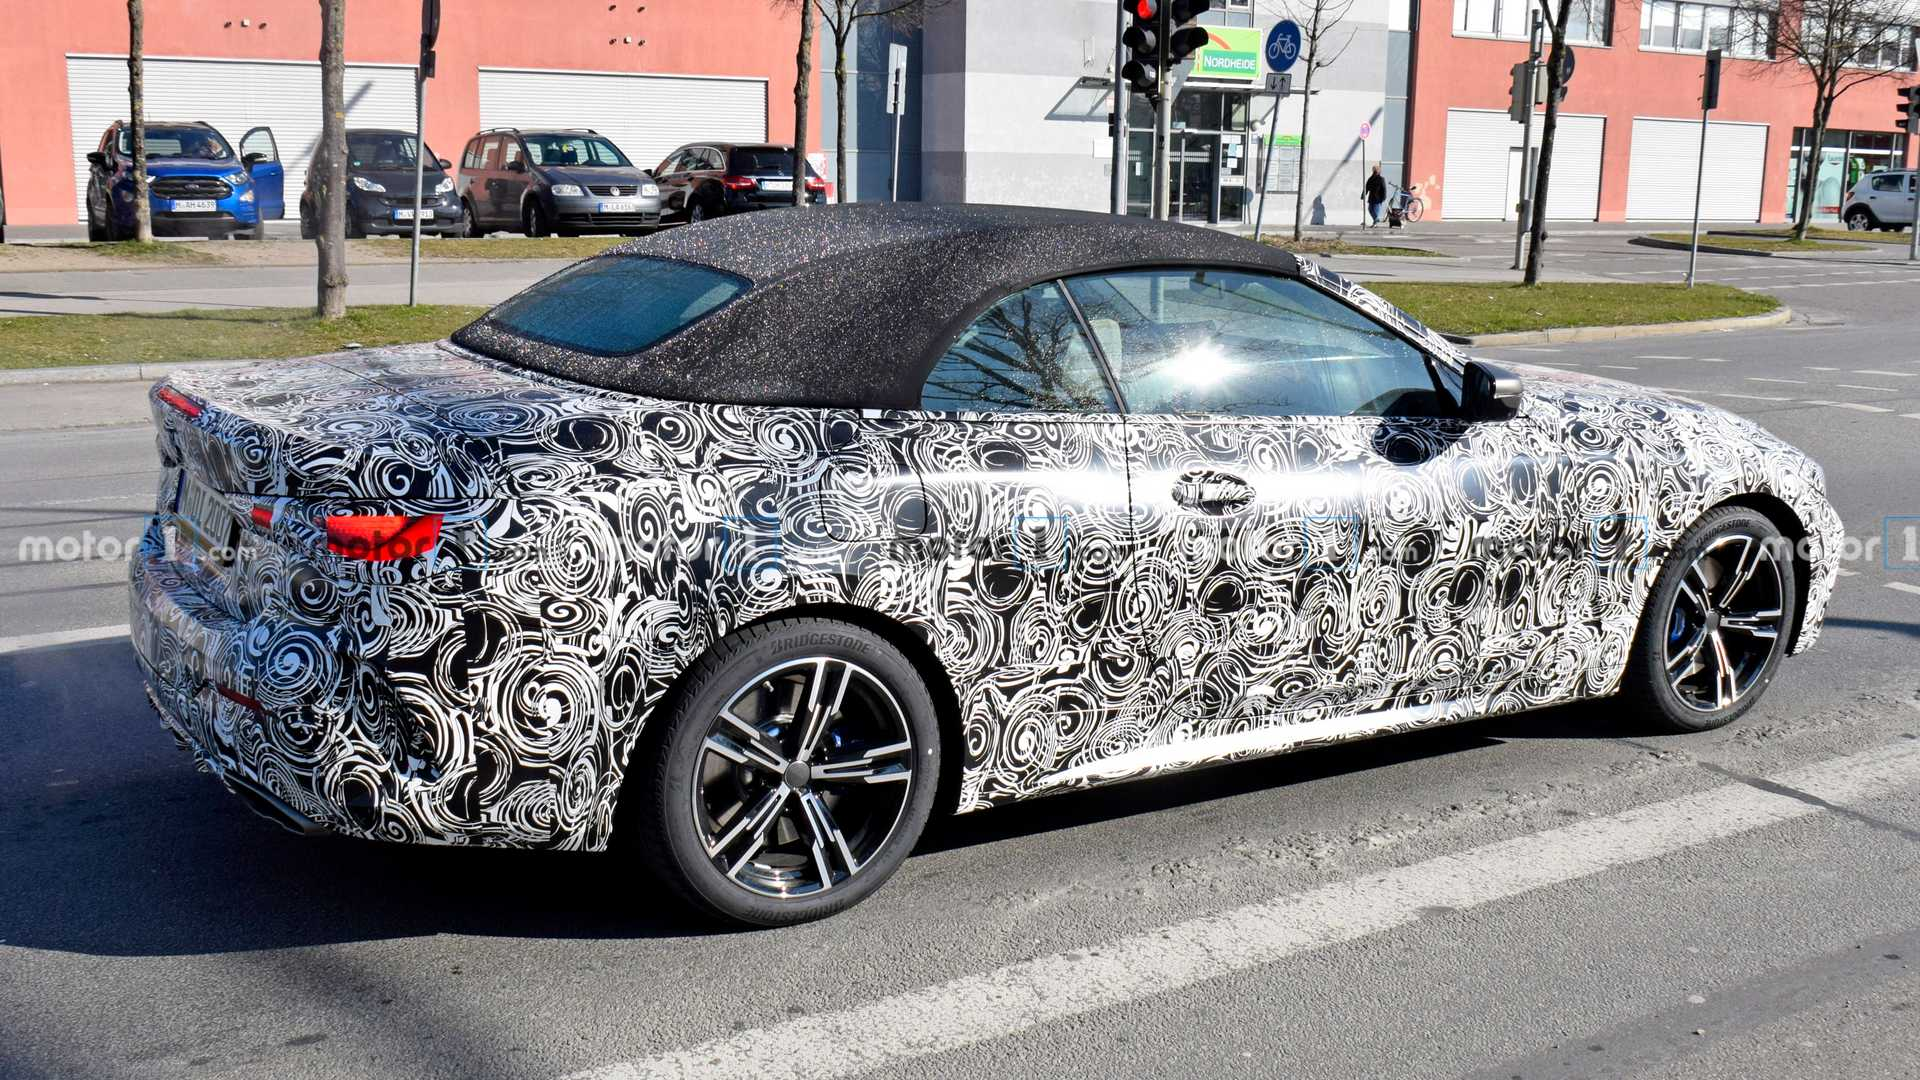 2020 - [BMW] Série 4 Coupé/Cabriolet G23-G22 - Page 8 2021-bmw-4-series-convertible-new-spy-photo